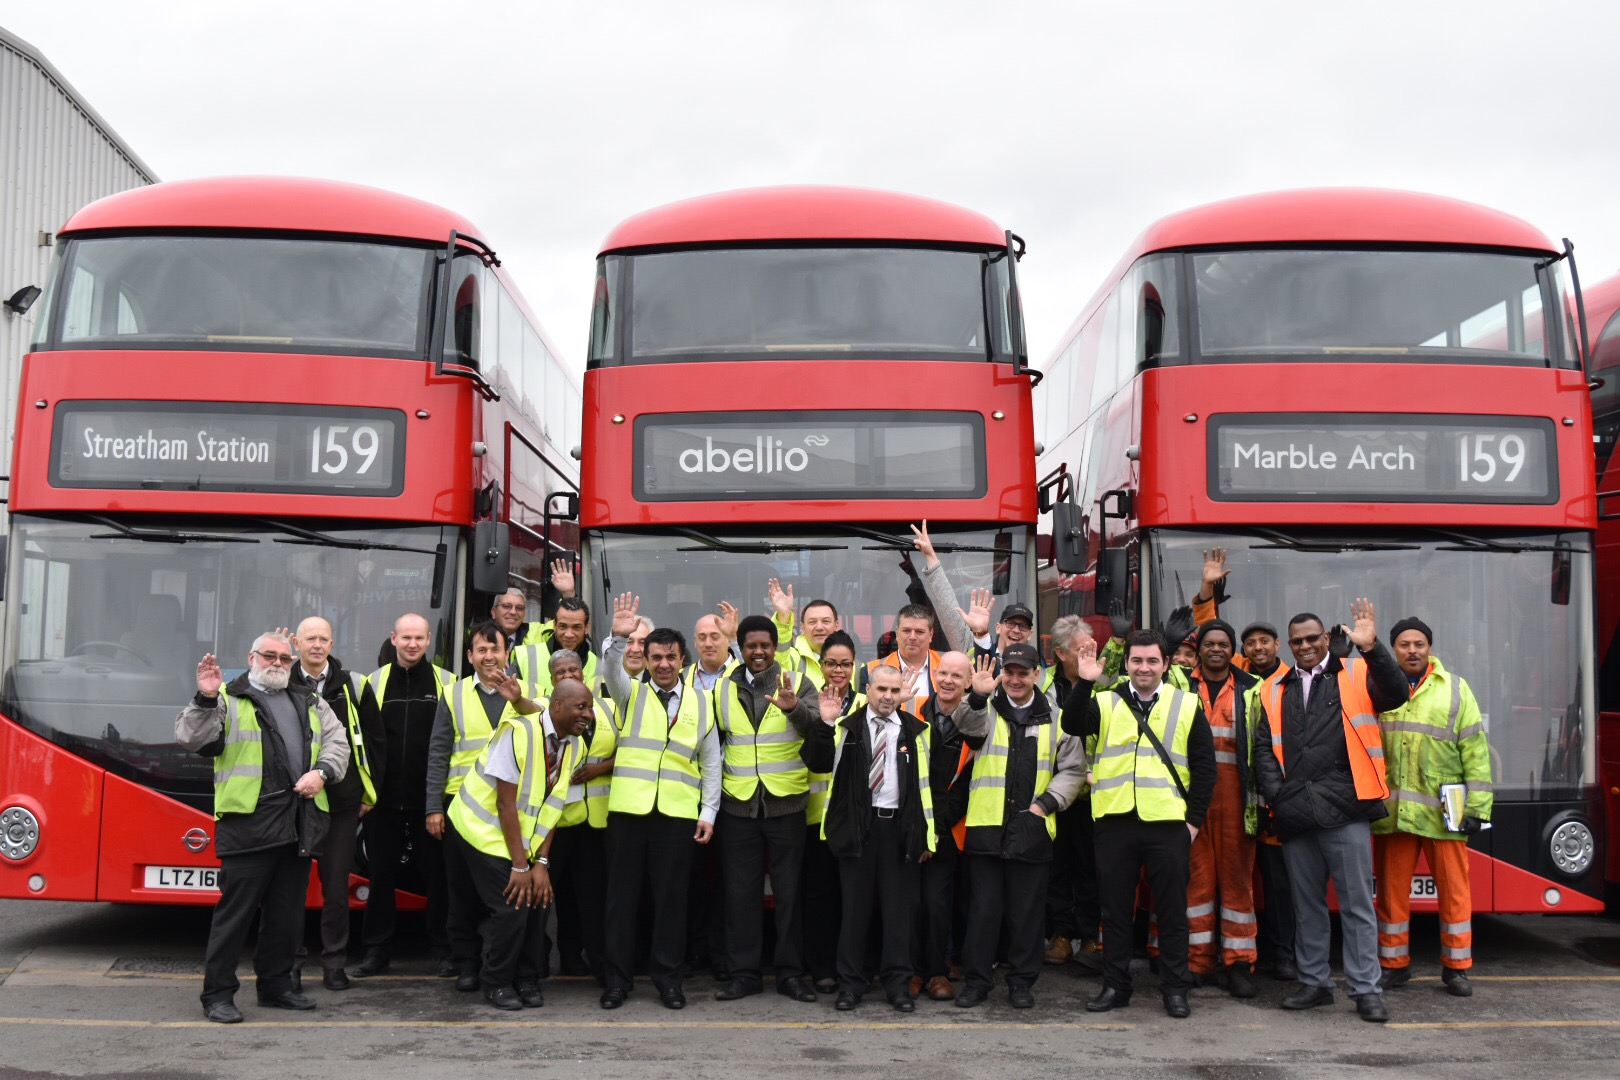 Abellio London now operates route 159